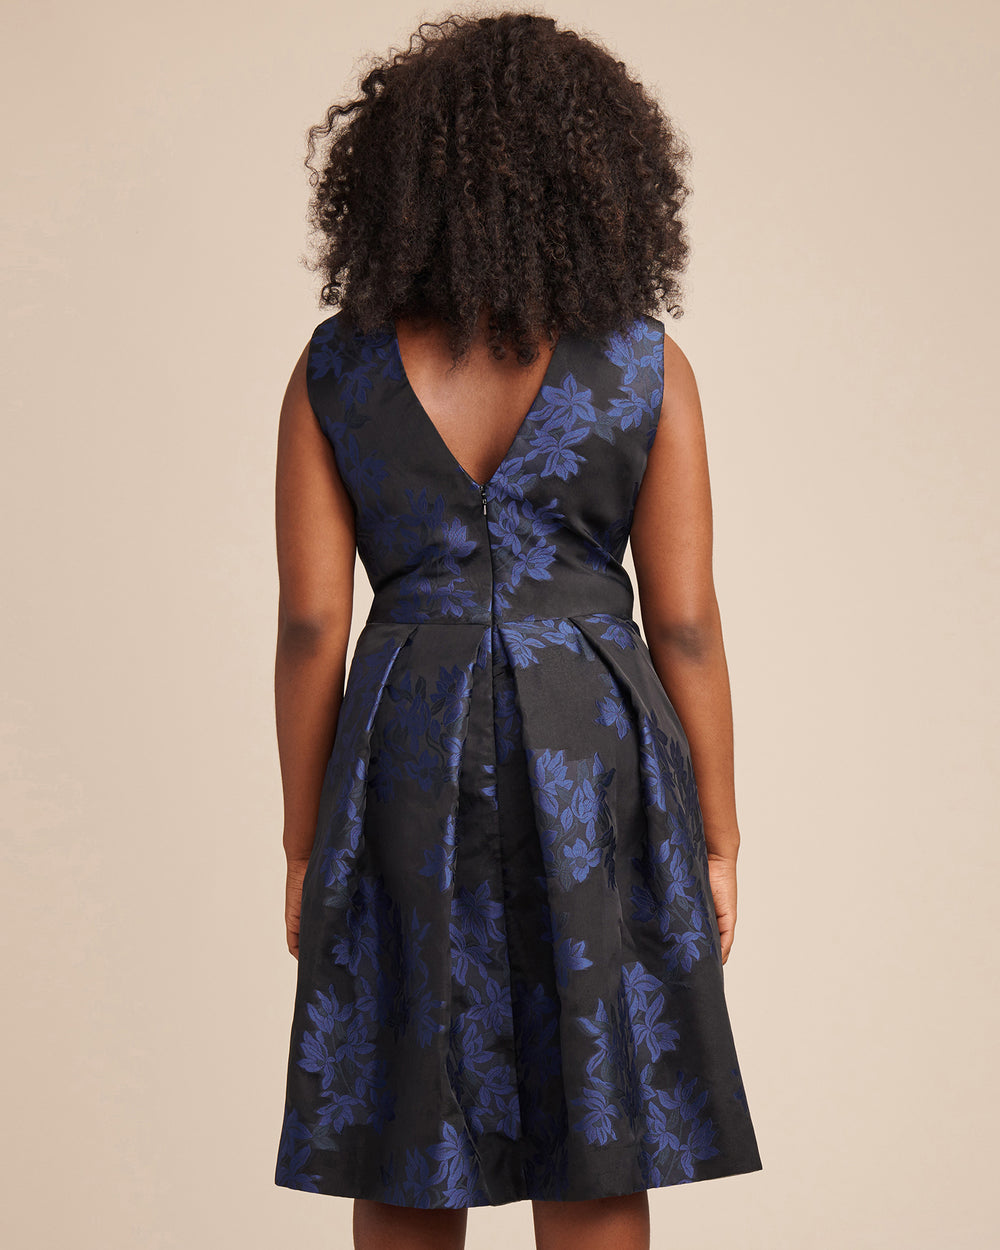 Jacquard Fit and Flare Cocktail Dress